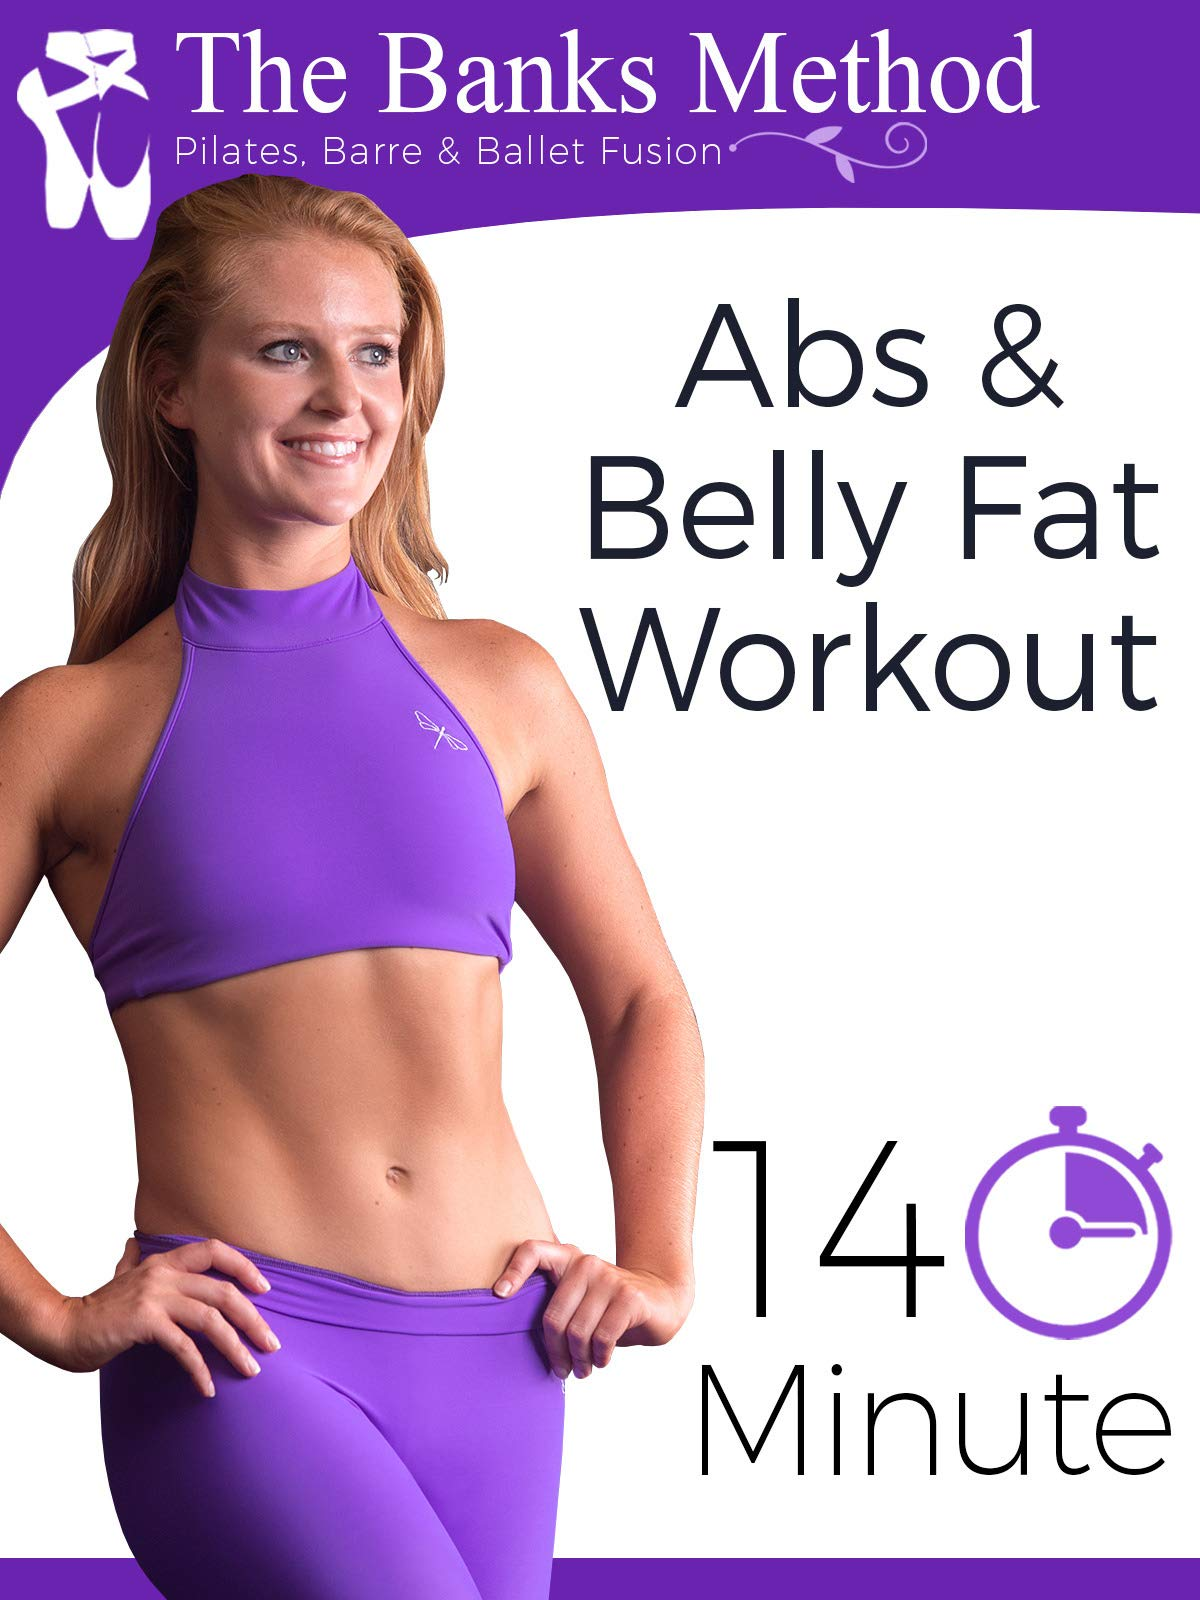 14 Minute Abs and Belly Fat Workout | The Banks Method: Pilates, Barre, and Ballet Fusion